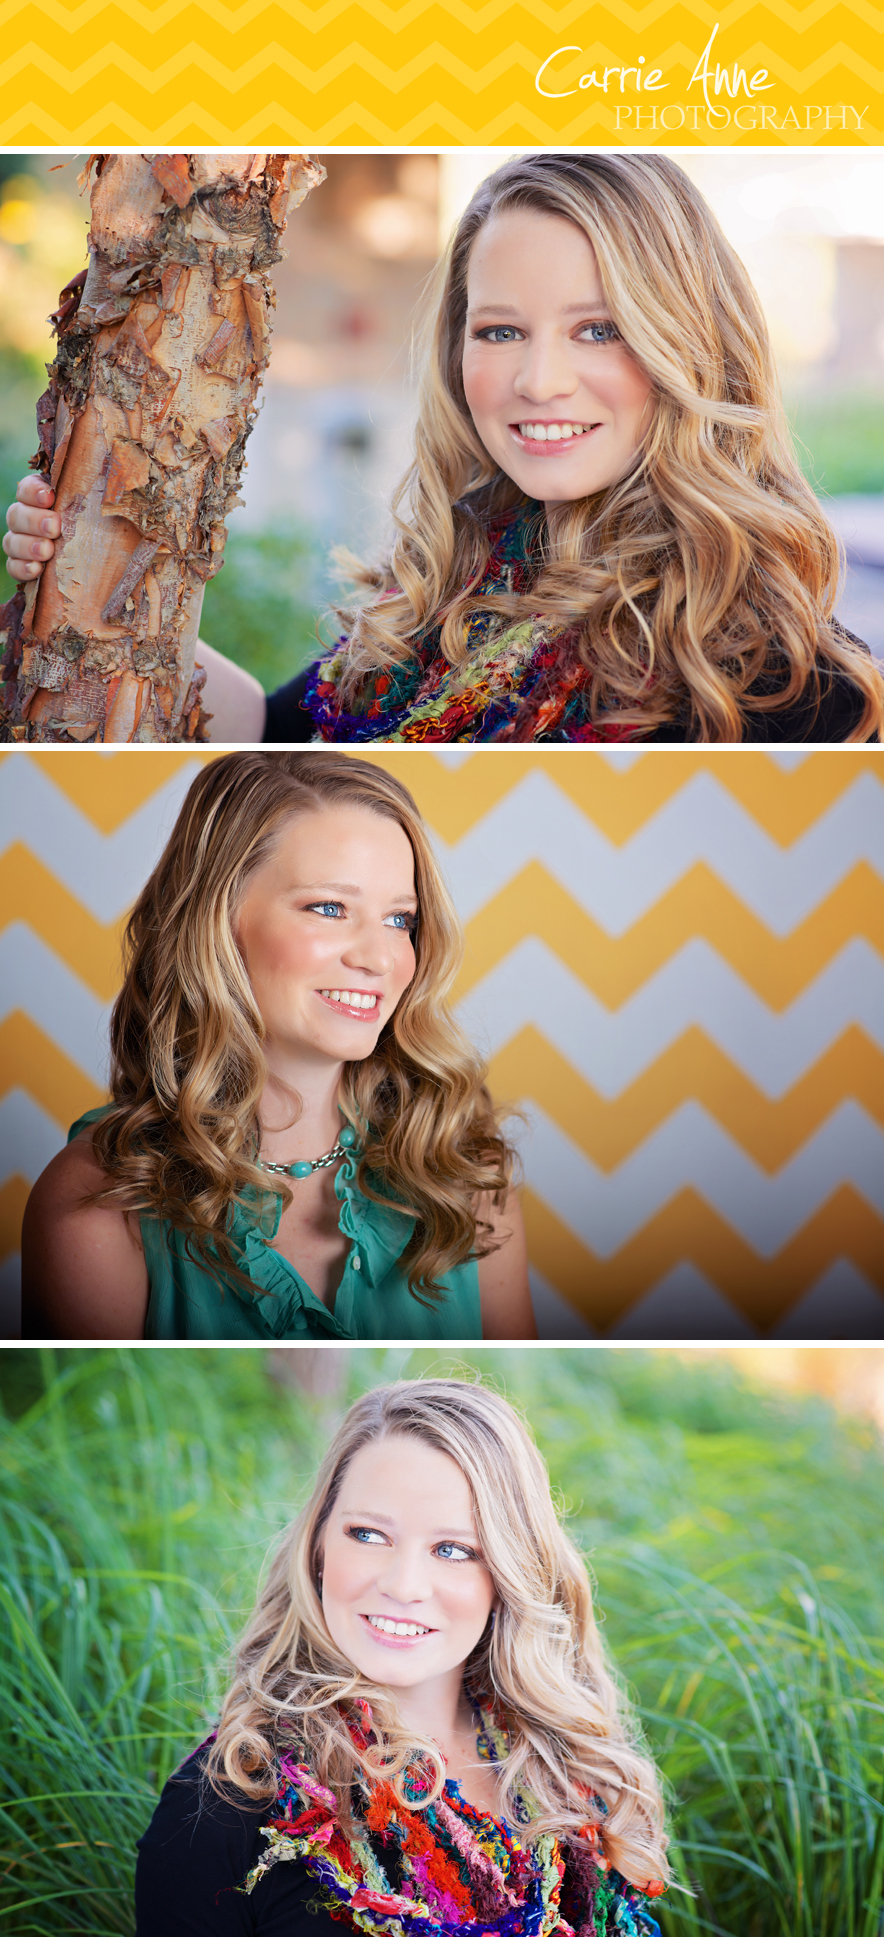 Colorful Senior Photography Ultimate Senior Girl Session in Ada, Grand Rapids, Cascade, Michigan. Natural, funky, bright, cheery, colorful, photography.